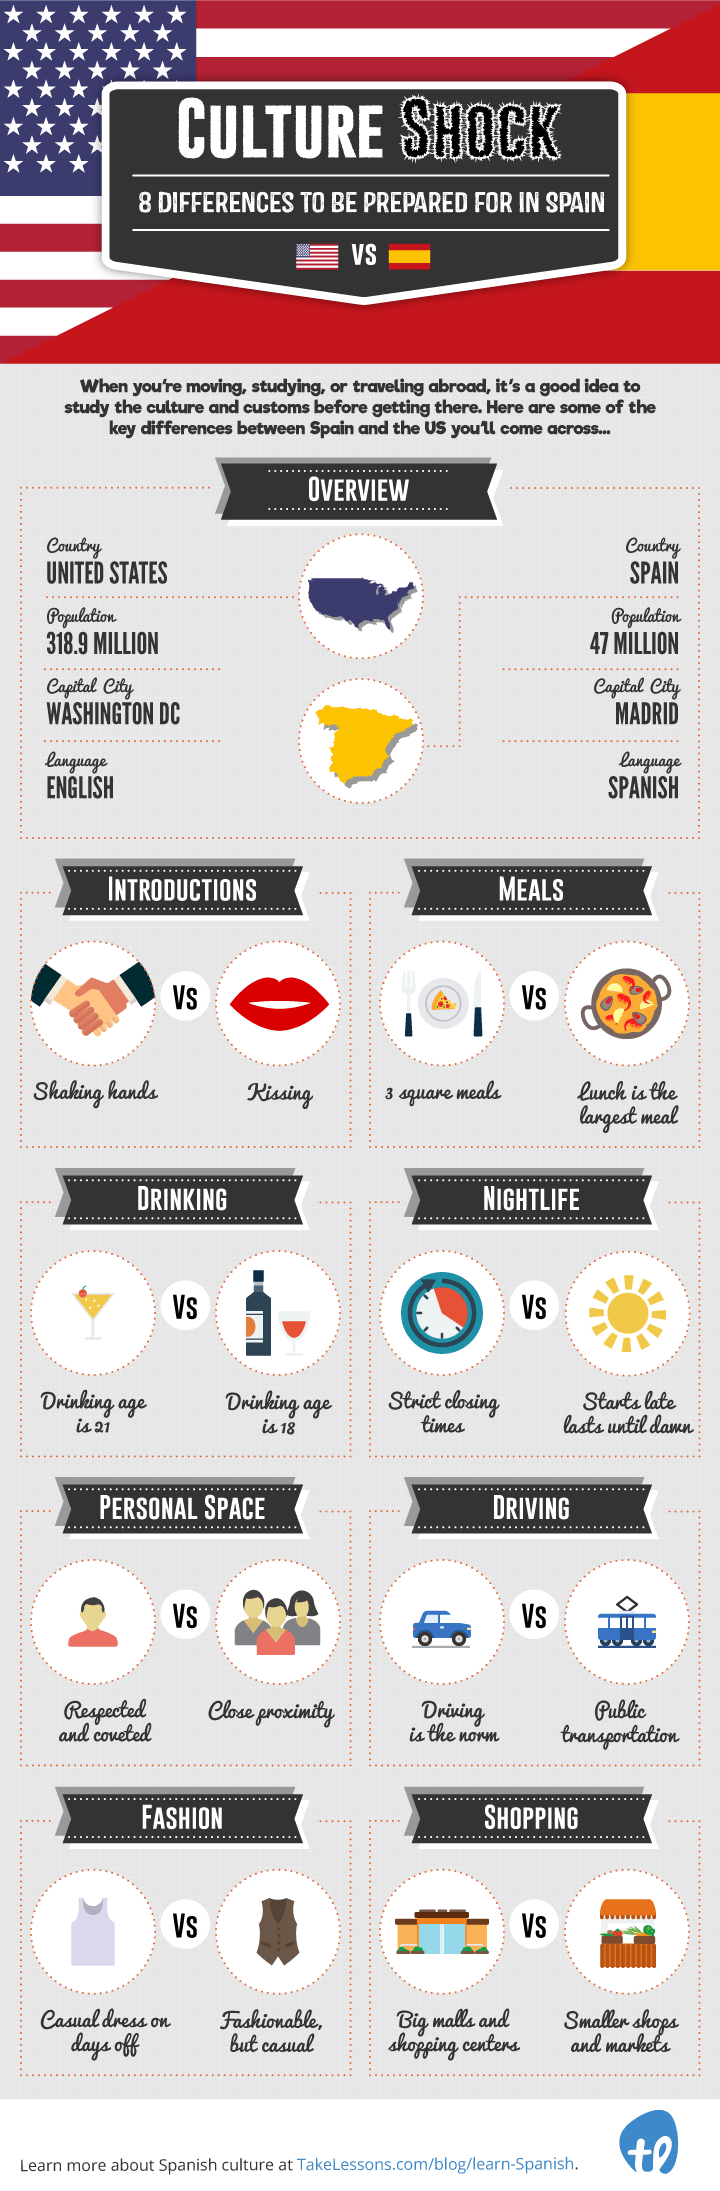 Culture-Shock-Life-in-Spain-vs.-Life-in-the-U.S.-Infographic